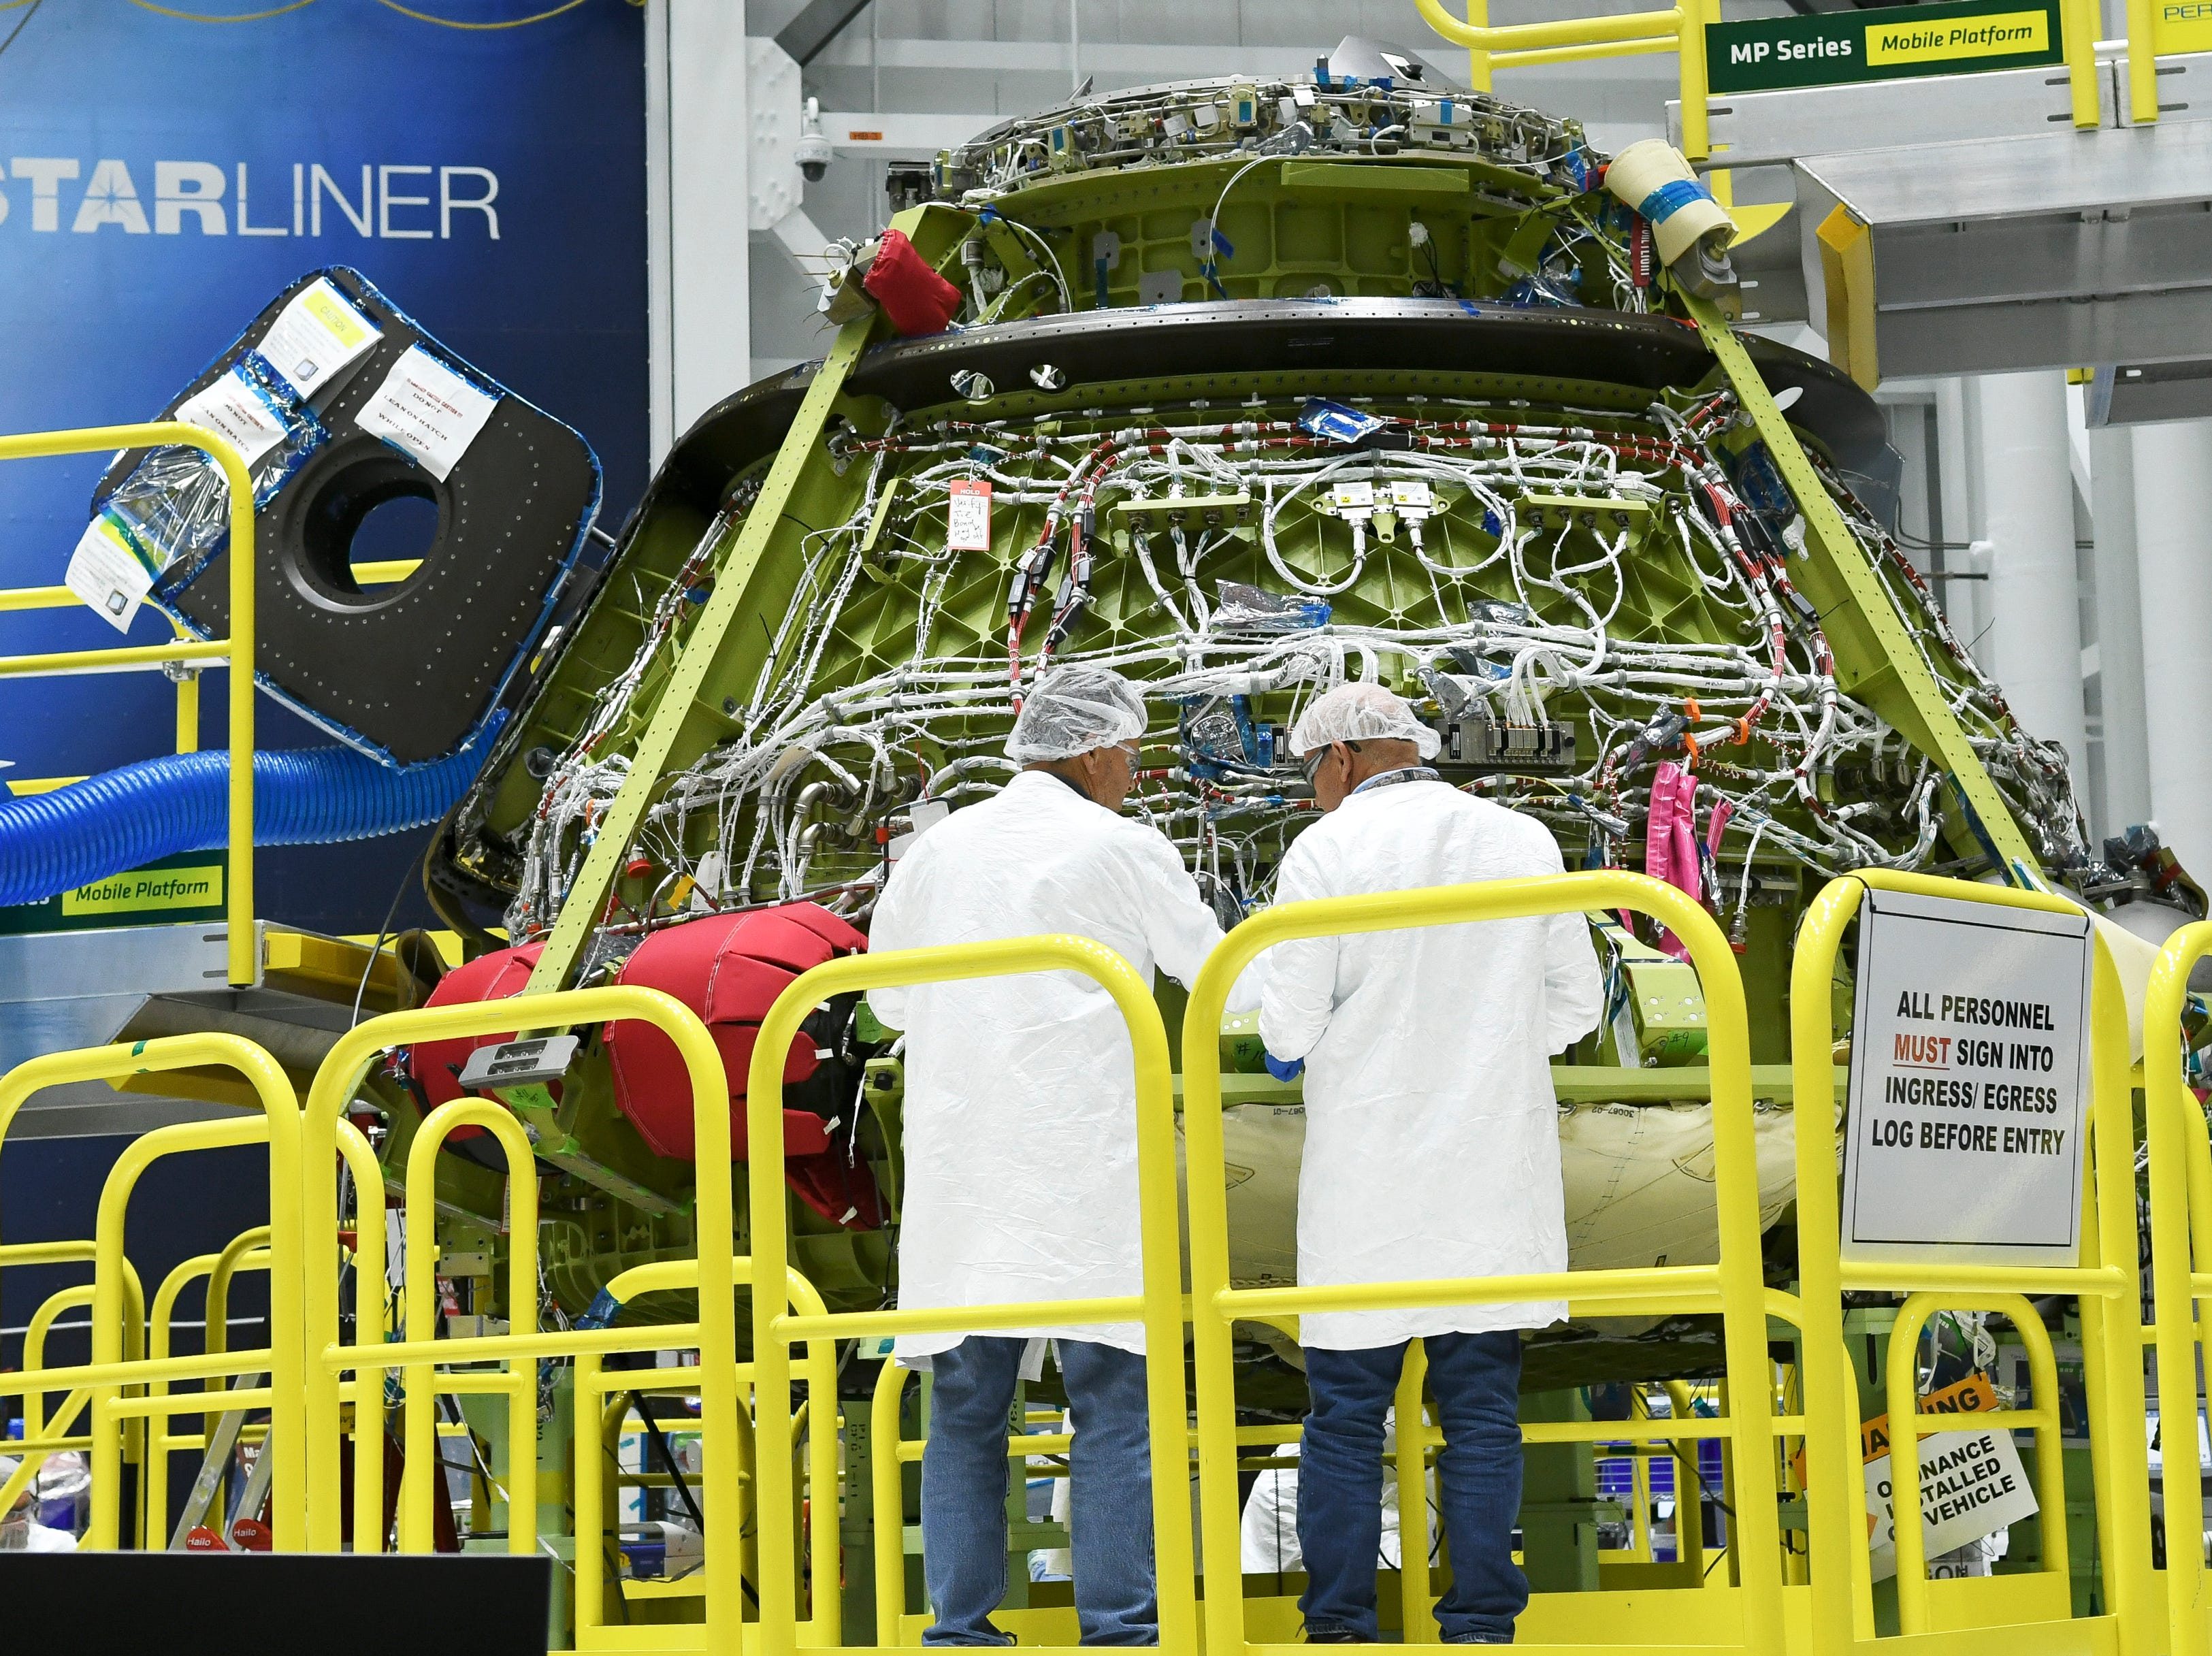 Construction continues on the Starliner crew test vehicle in the Boeing manufacturing facility at Kennedy Space Center.